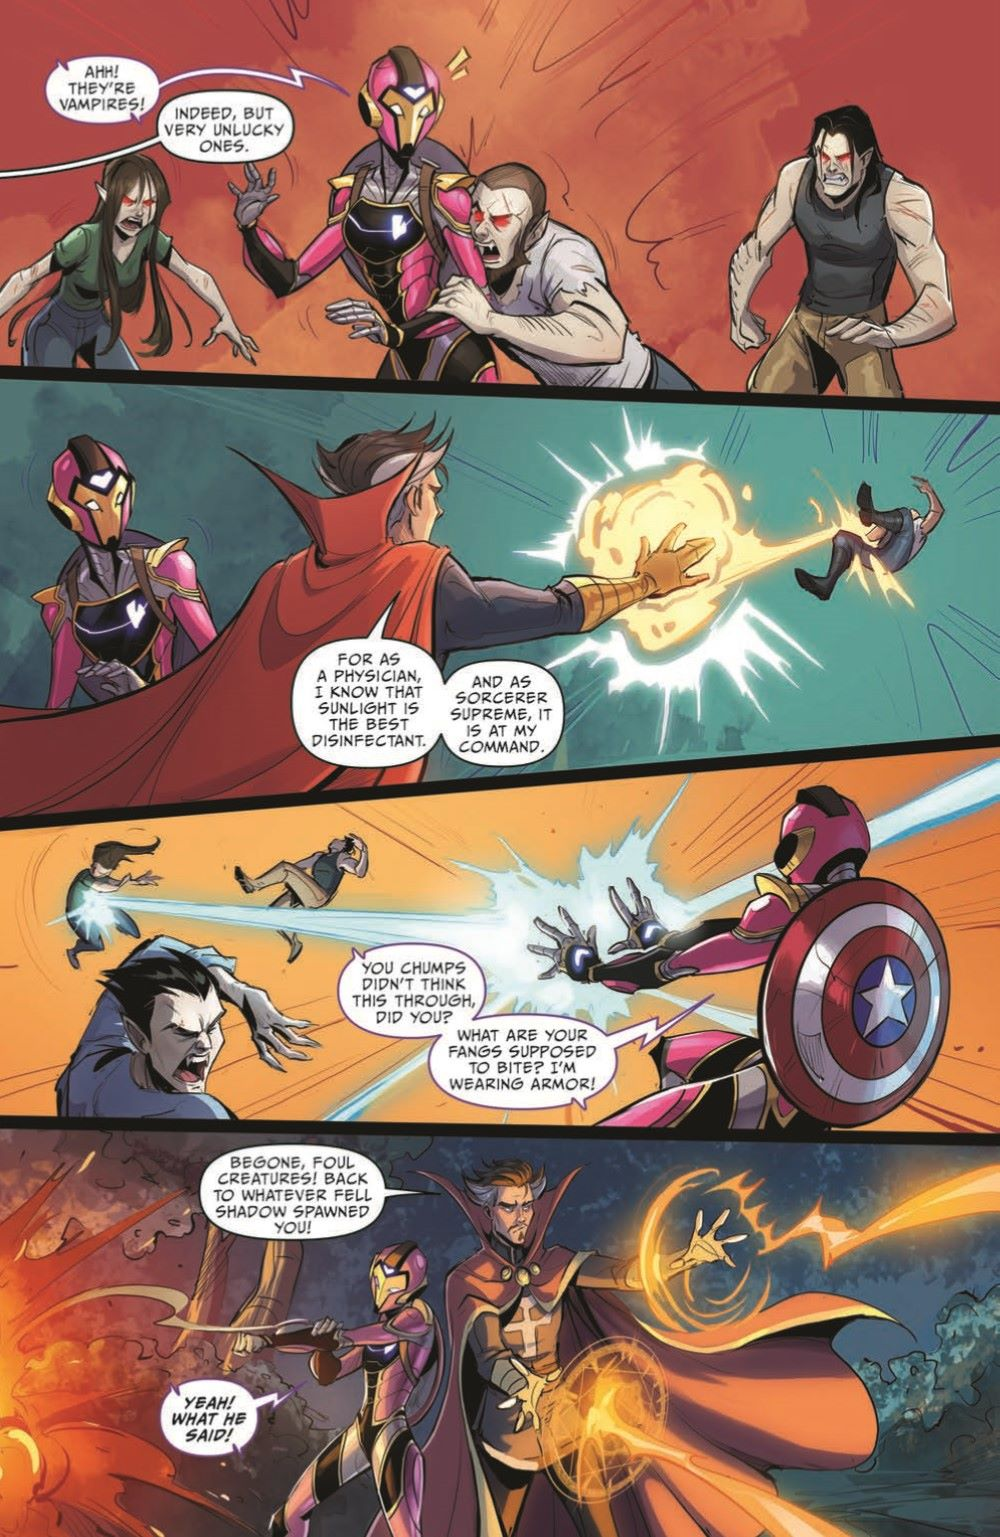 Marvel_Chillers_02-pr-4 ComicList Previews: MARVEL ACTION CHILLERS #2